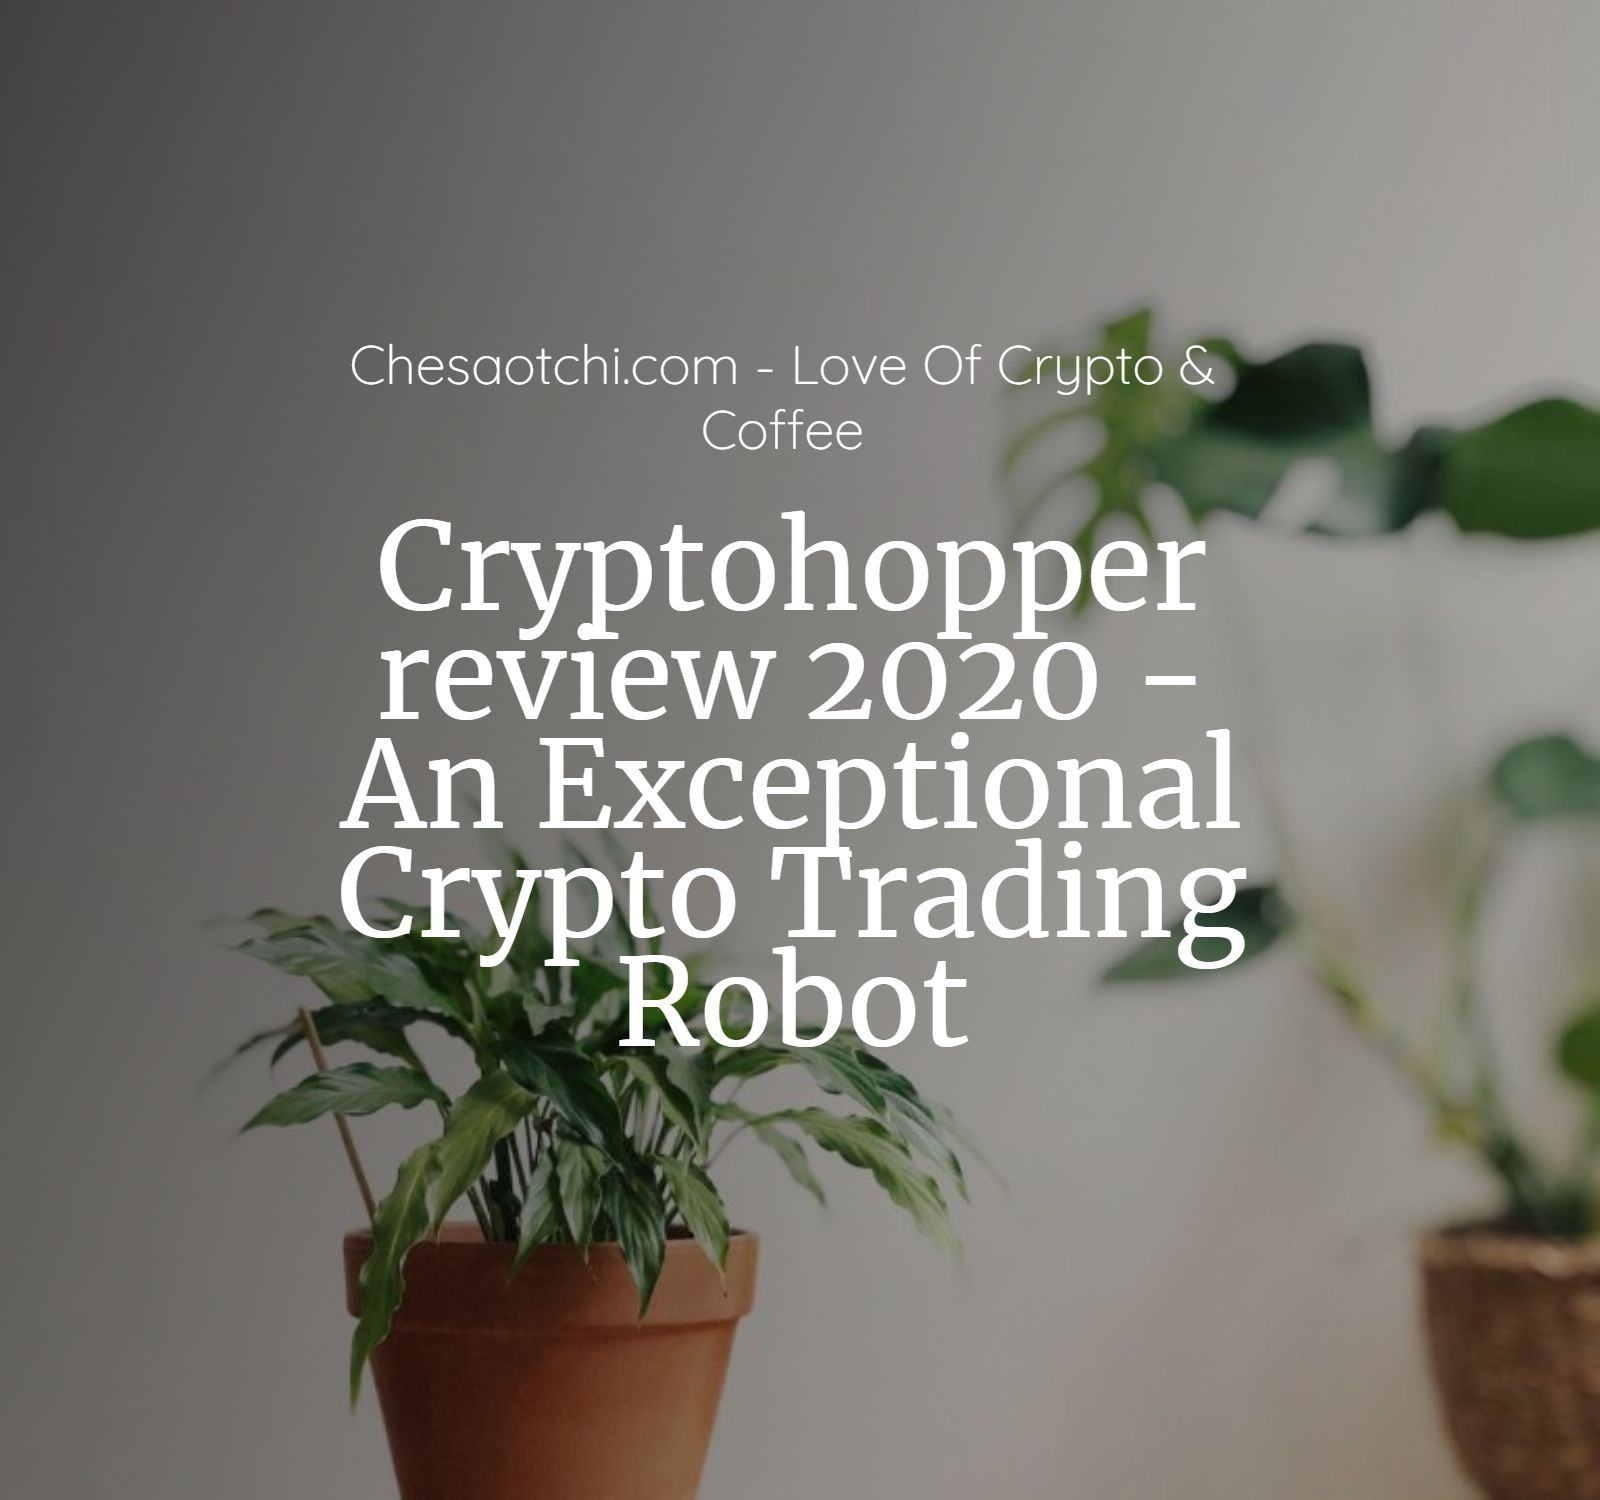 cryptohopper_review_2020_an_exceptional.jpg